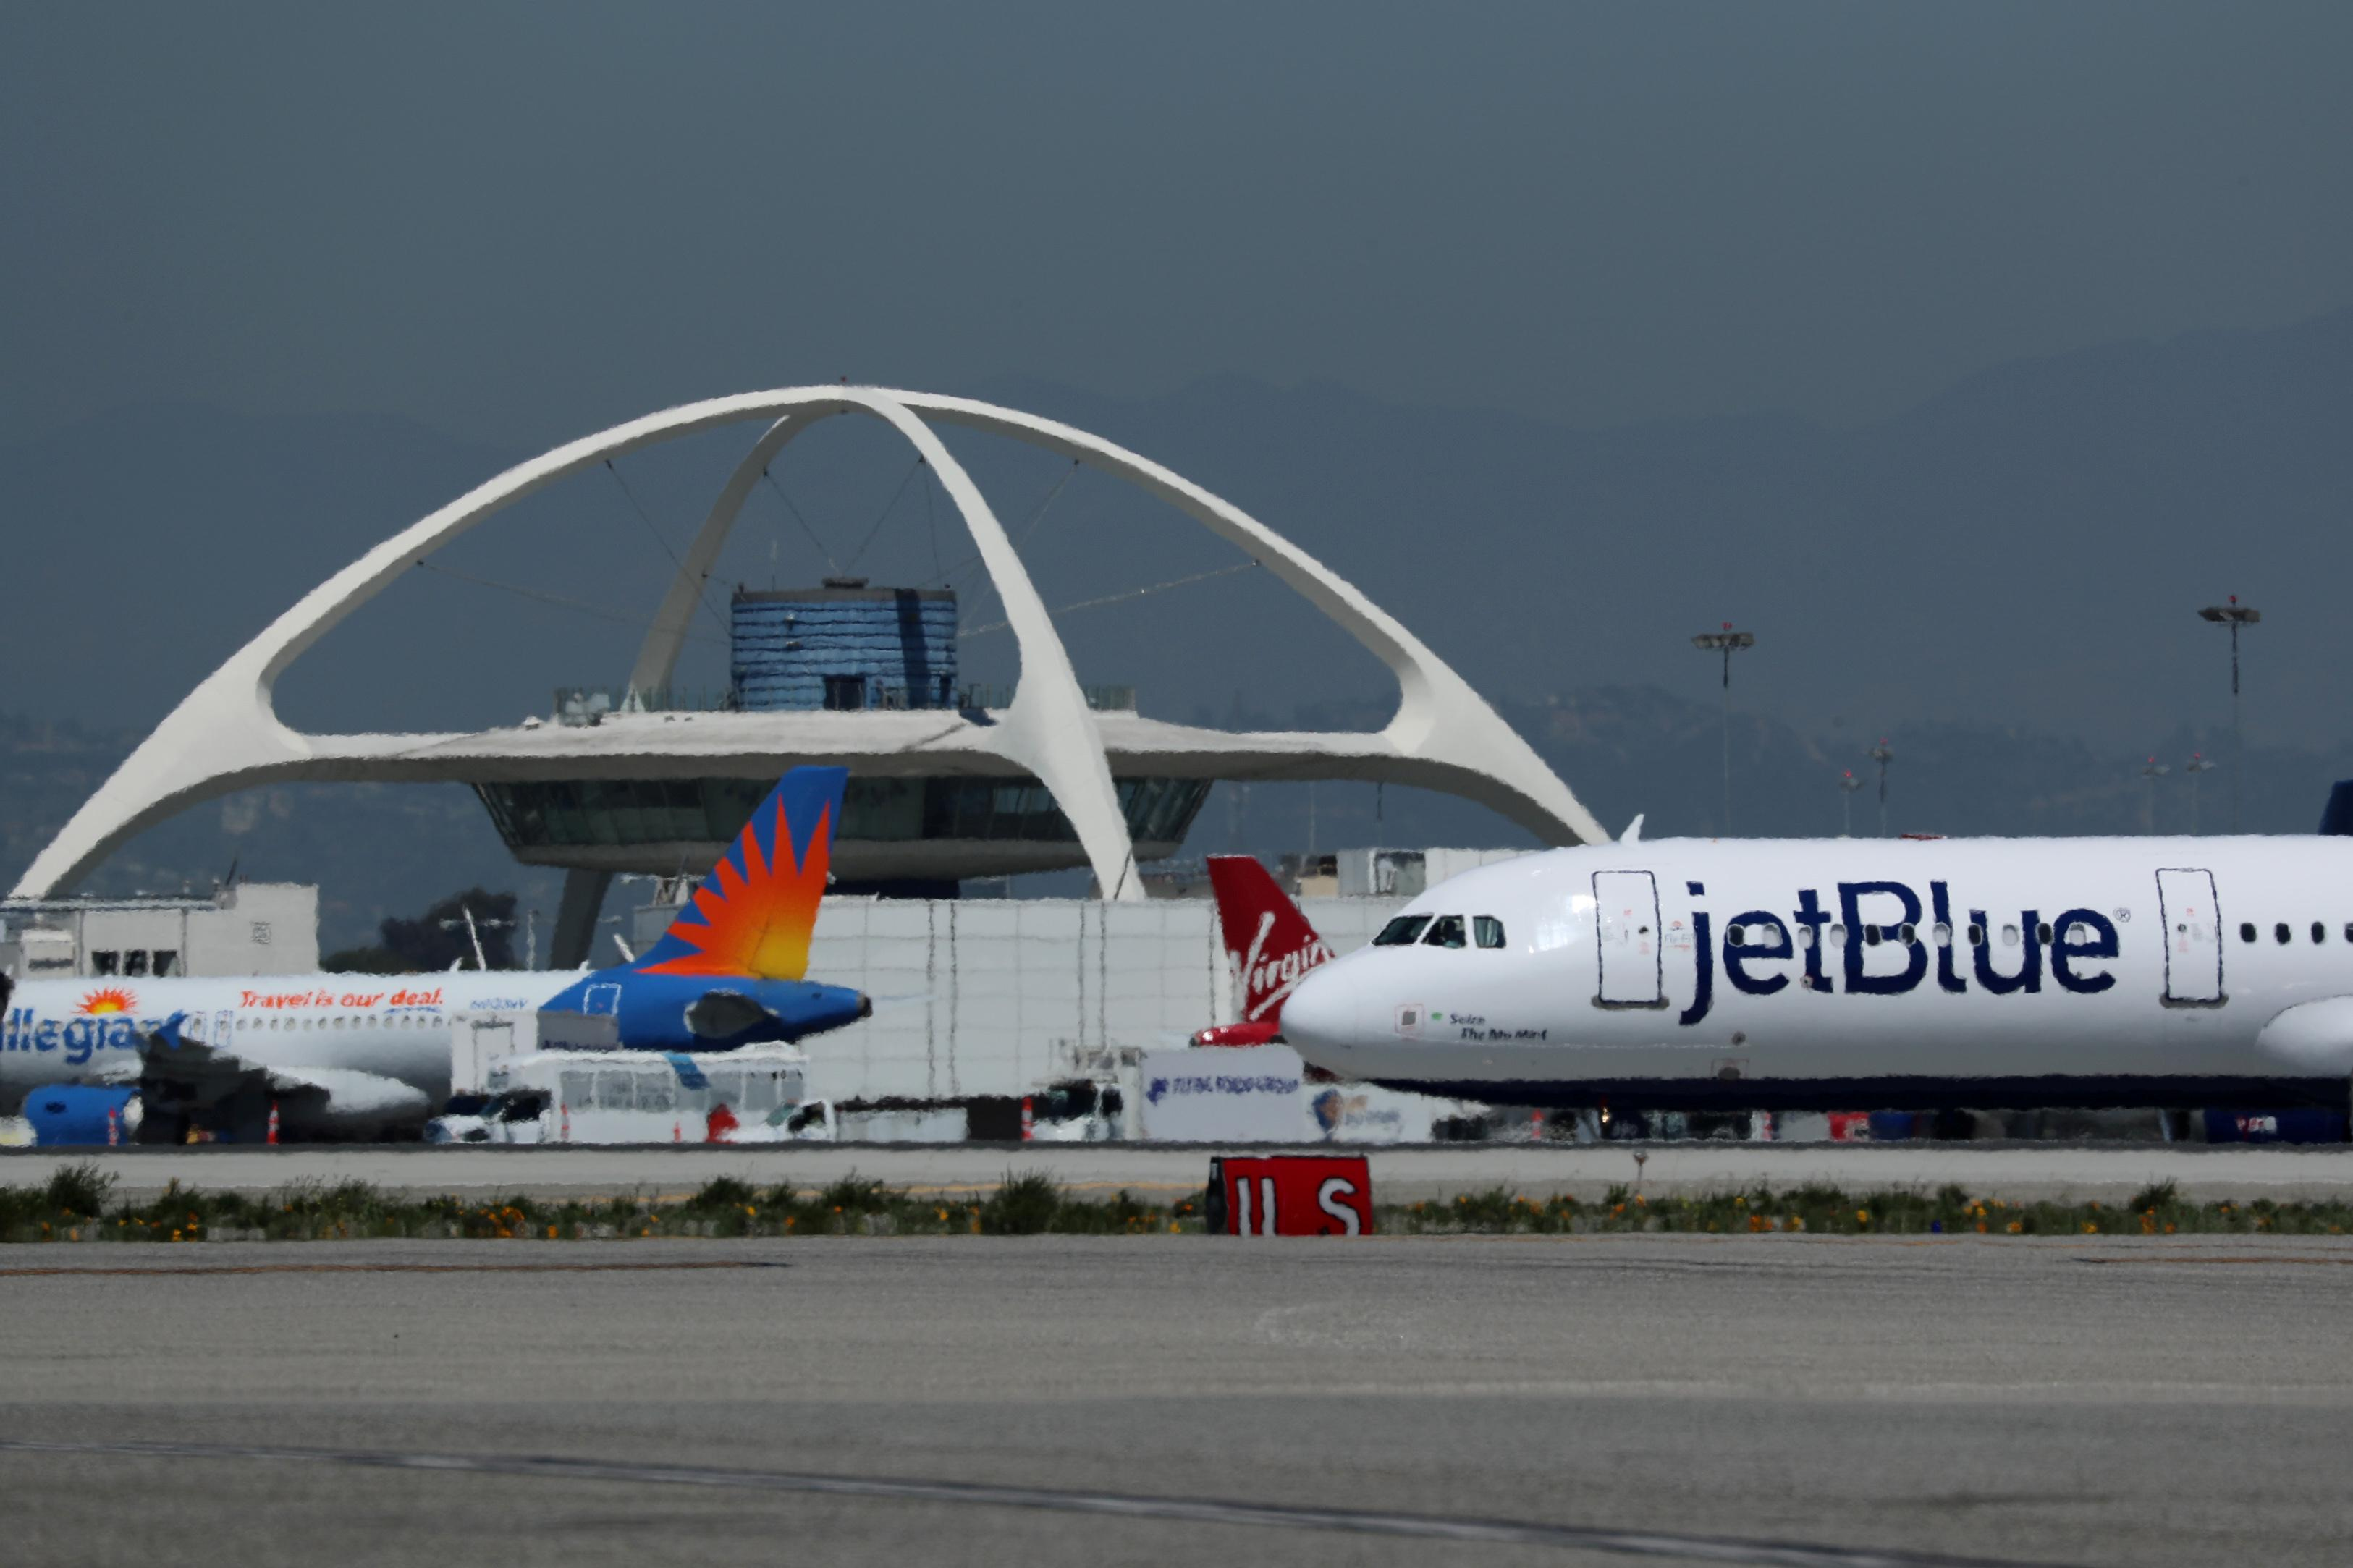 jet blue problem statement Problem statement jetblue needed to find a turnaround solution, resulting from disruptive events or irops, that had been reducing their revenues.